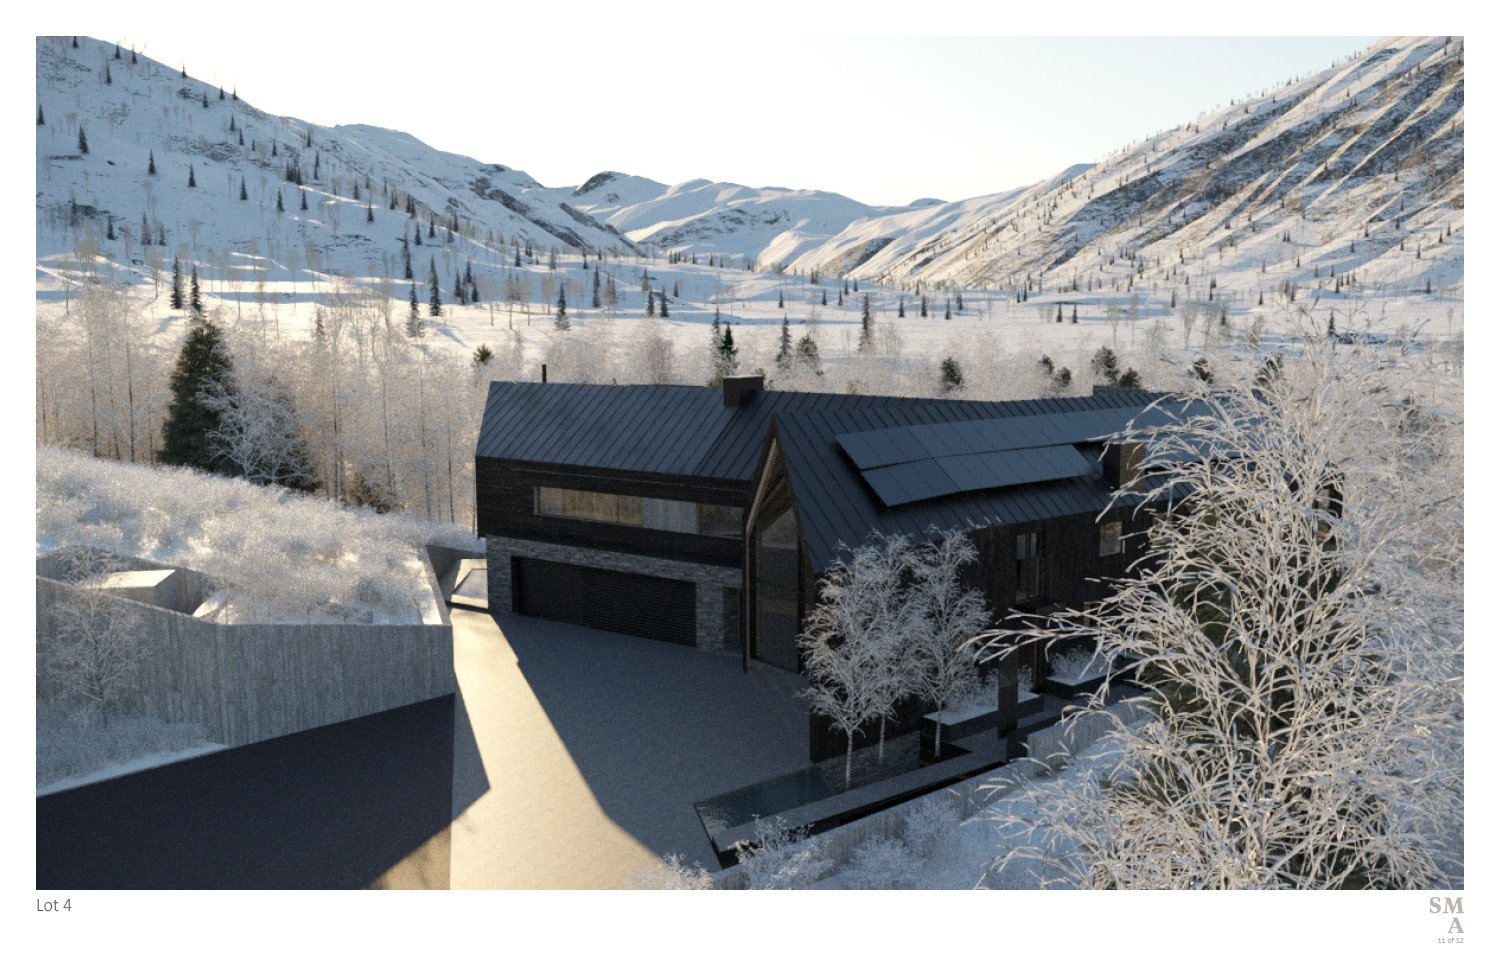 """Lot 4 - A contextual view of the """"imperfect"""" chevron structure situated in the surrounding mountain range. SMA Design Team & Consultants"""